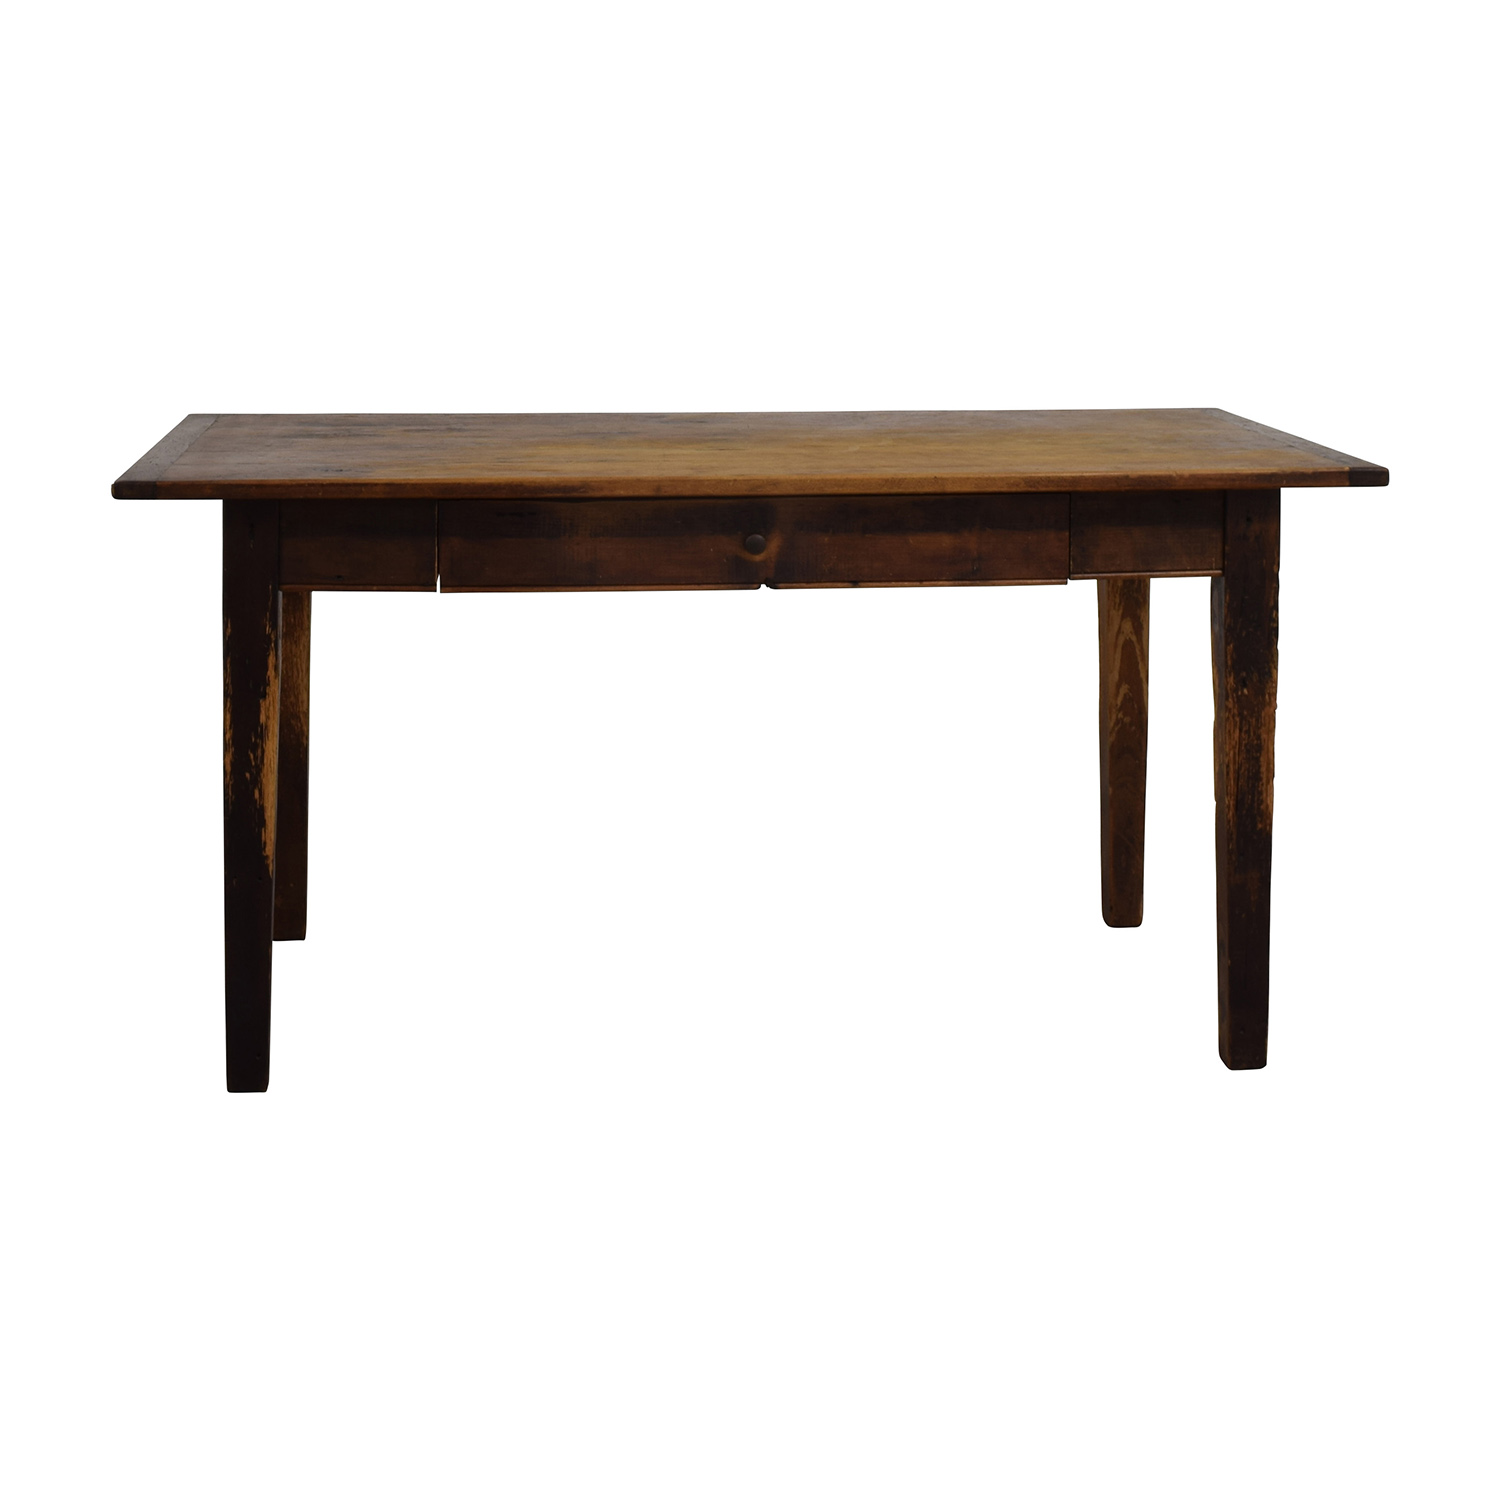 Antique Table with Single Drawer brown